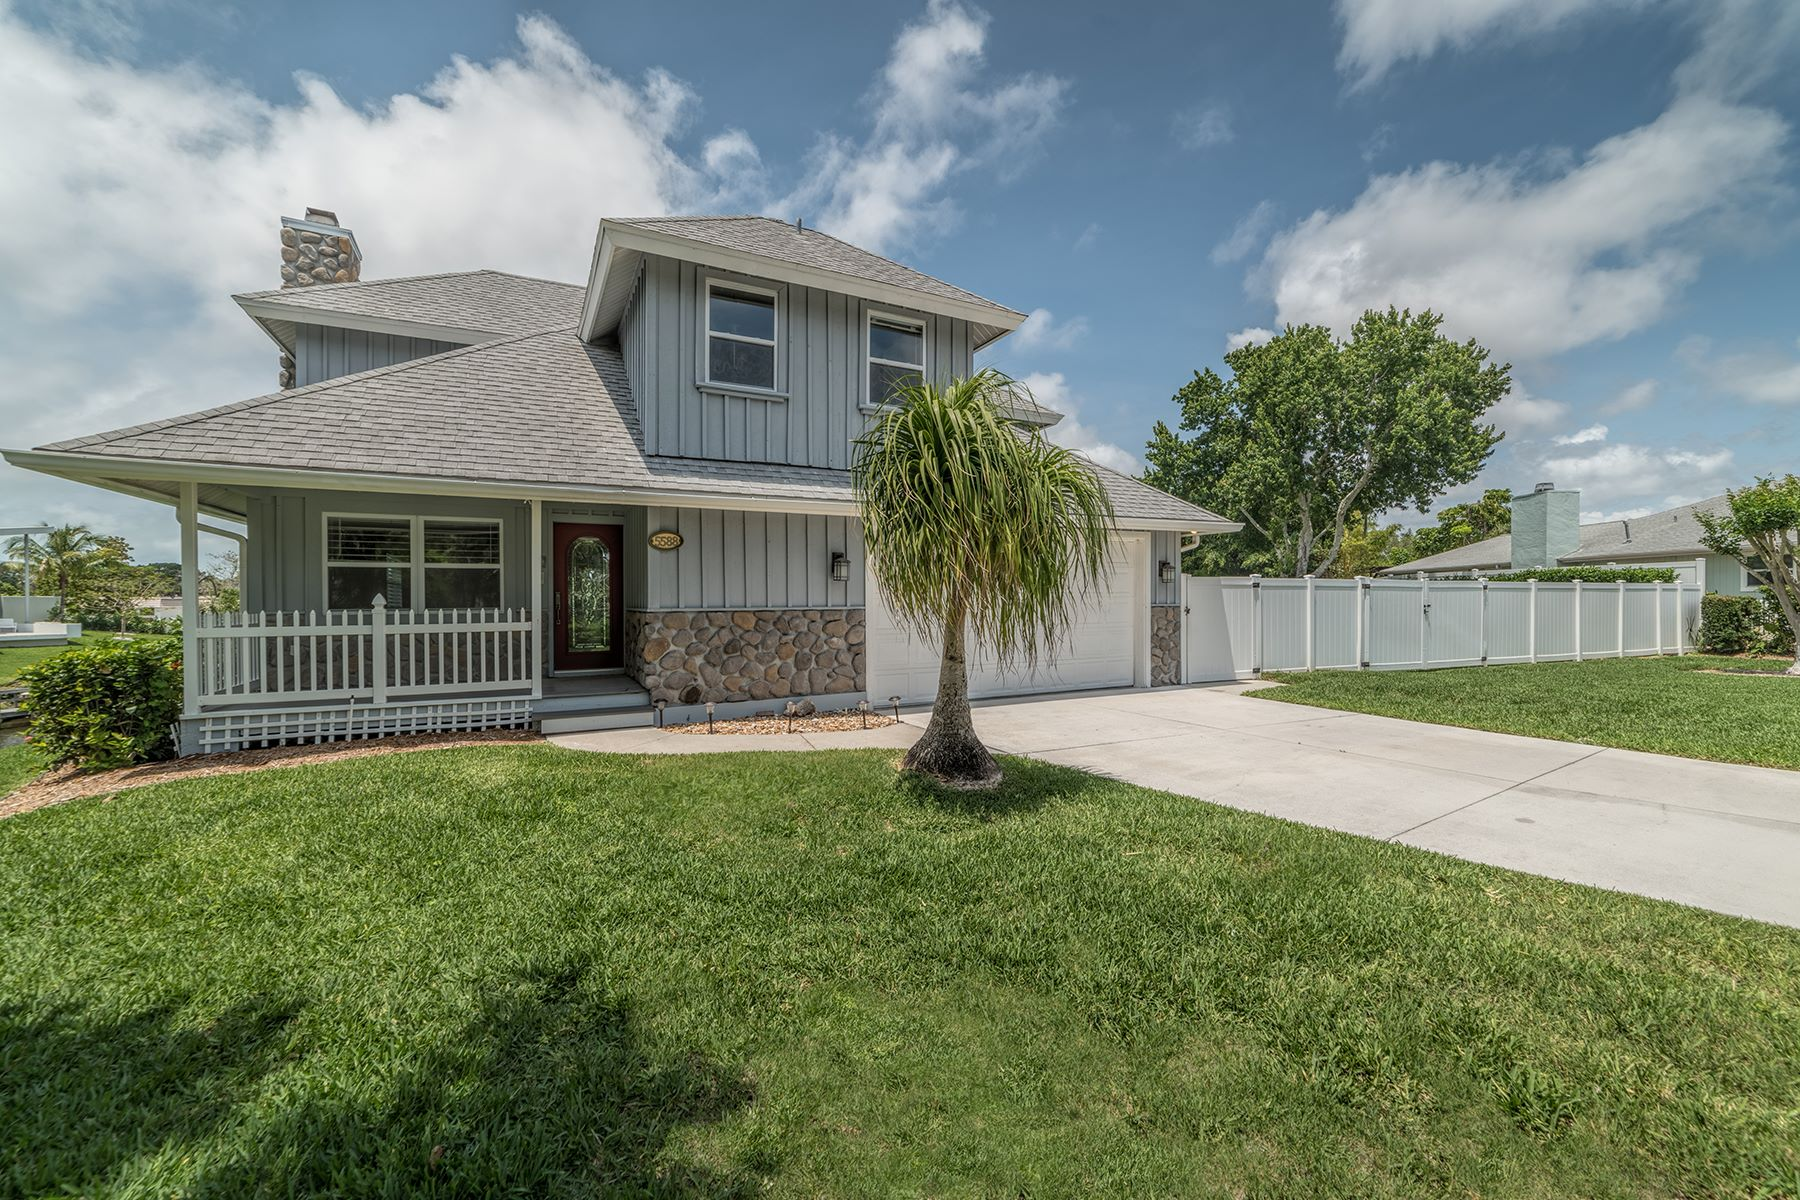 Single Family Home for Sale at PHILLIPI GARDENS 5588 Ships Channel Cir Sarasota, Florida, 34231 United States